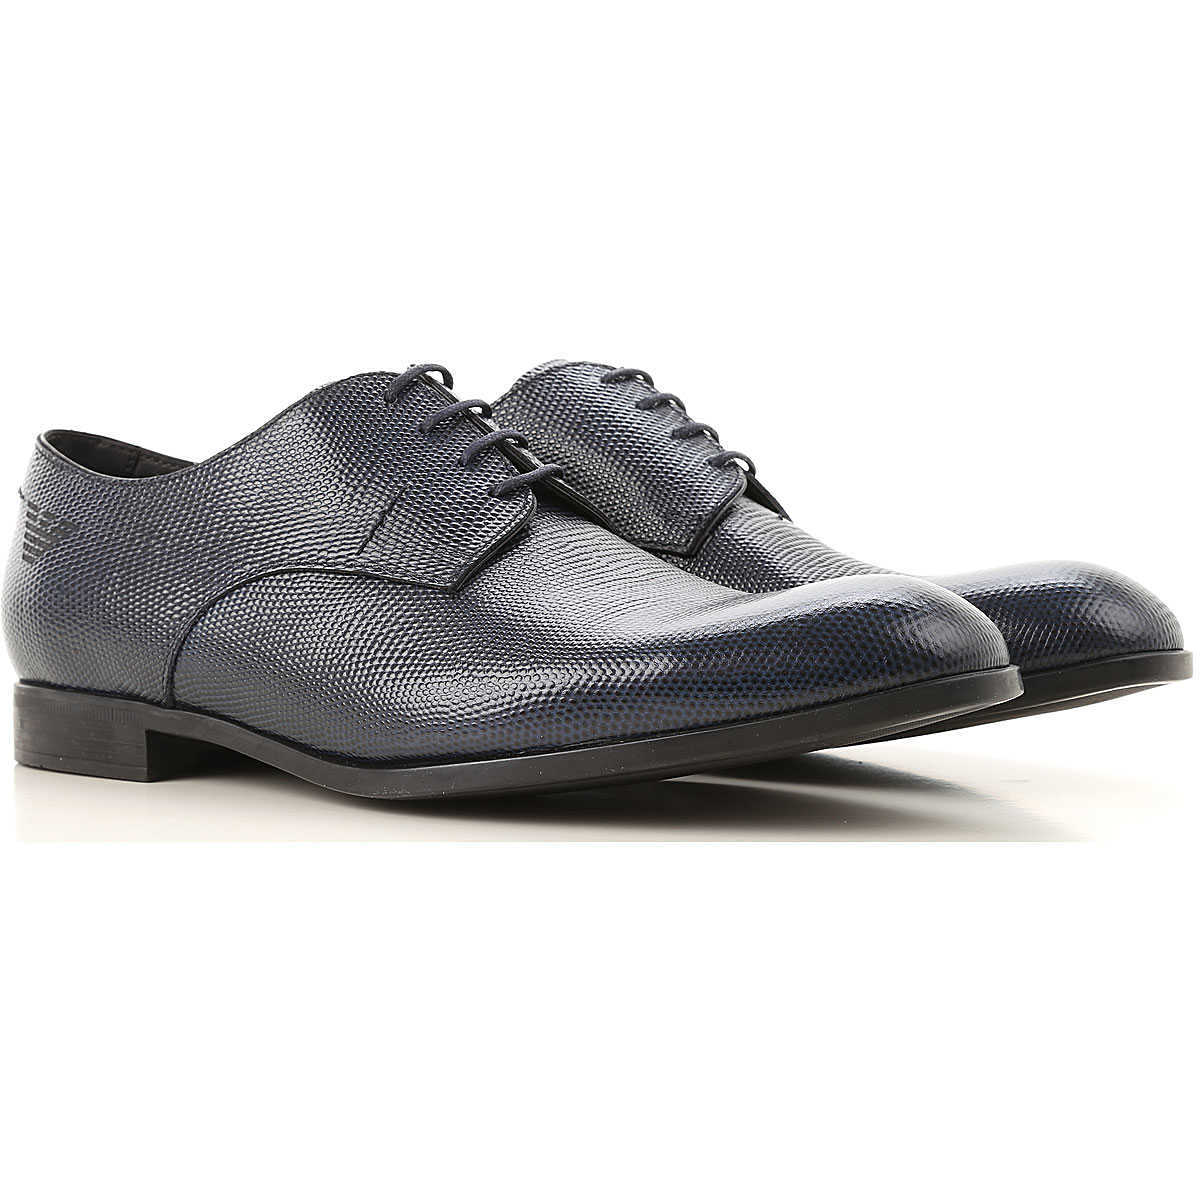 Emporio Armani Lace Up Shoes for Men Oxfords 10 11 9 Derbies and Brogues On Sale UK - GOOFASH